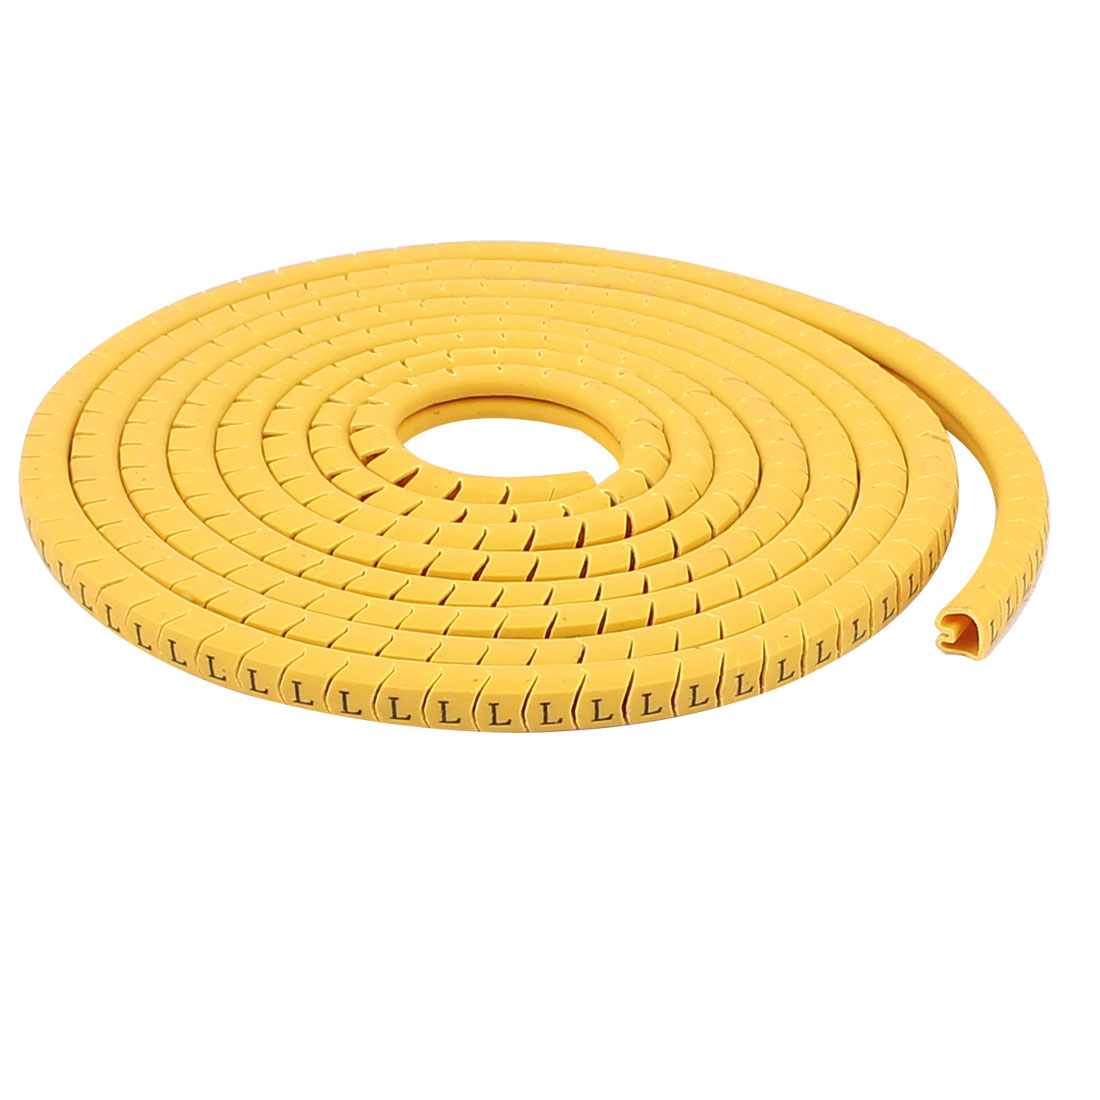 2.5mm2 Wire Yellow PVC Concave Conversed Shaped Letter L Pattern Cable Markers Labels Strips 2Pcs